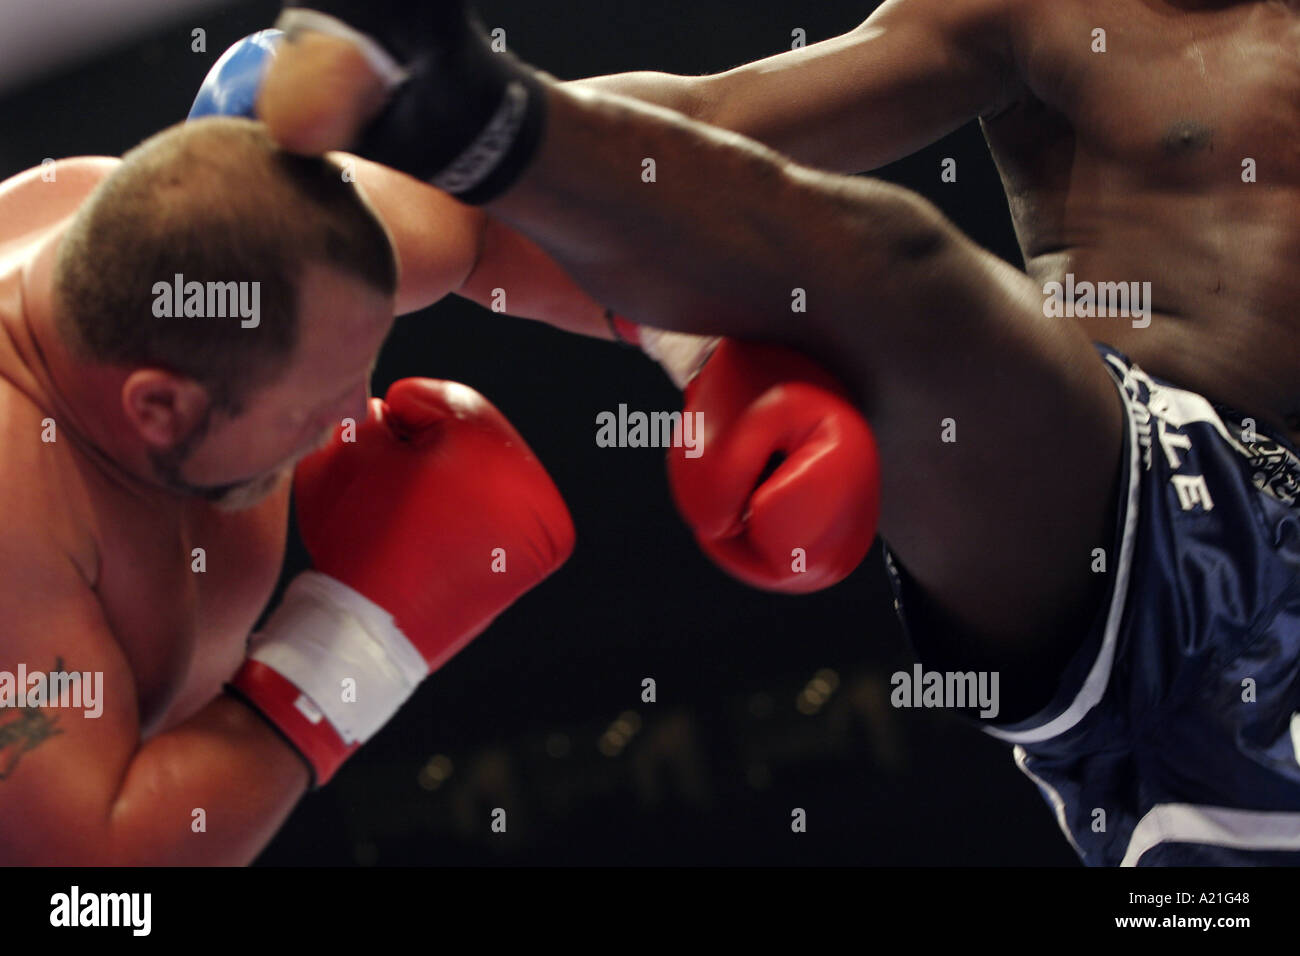 K-1 kick boxing fighters in the heat of a round, K1 tournament, Tokyo, Japan. Asia. - Stock Image